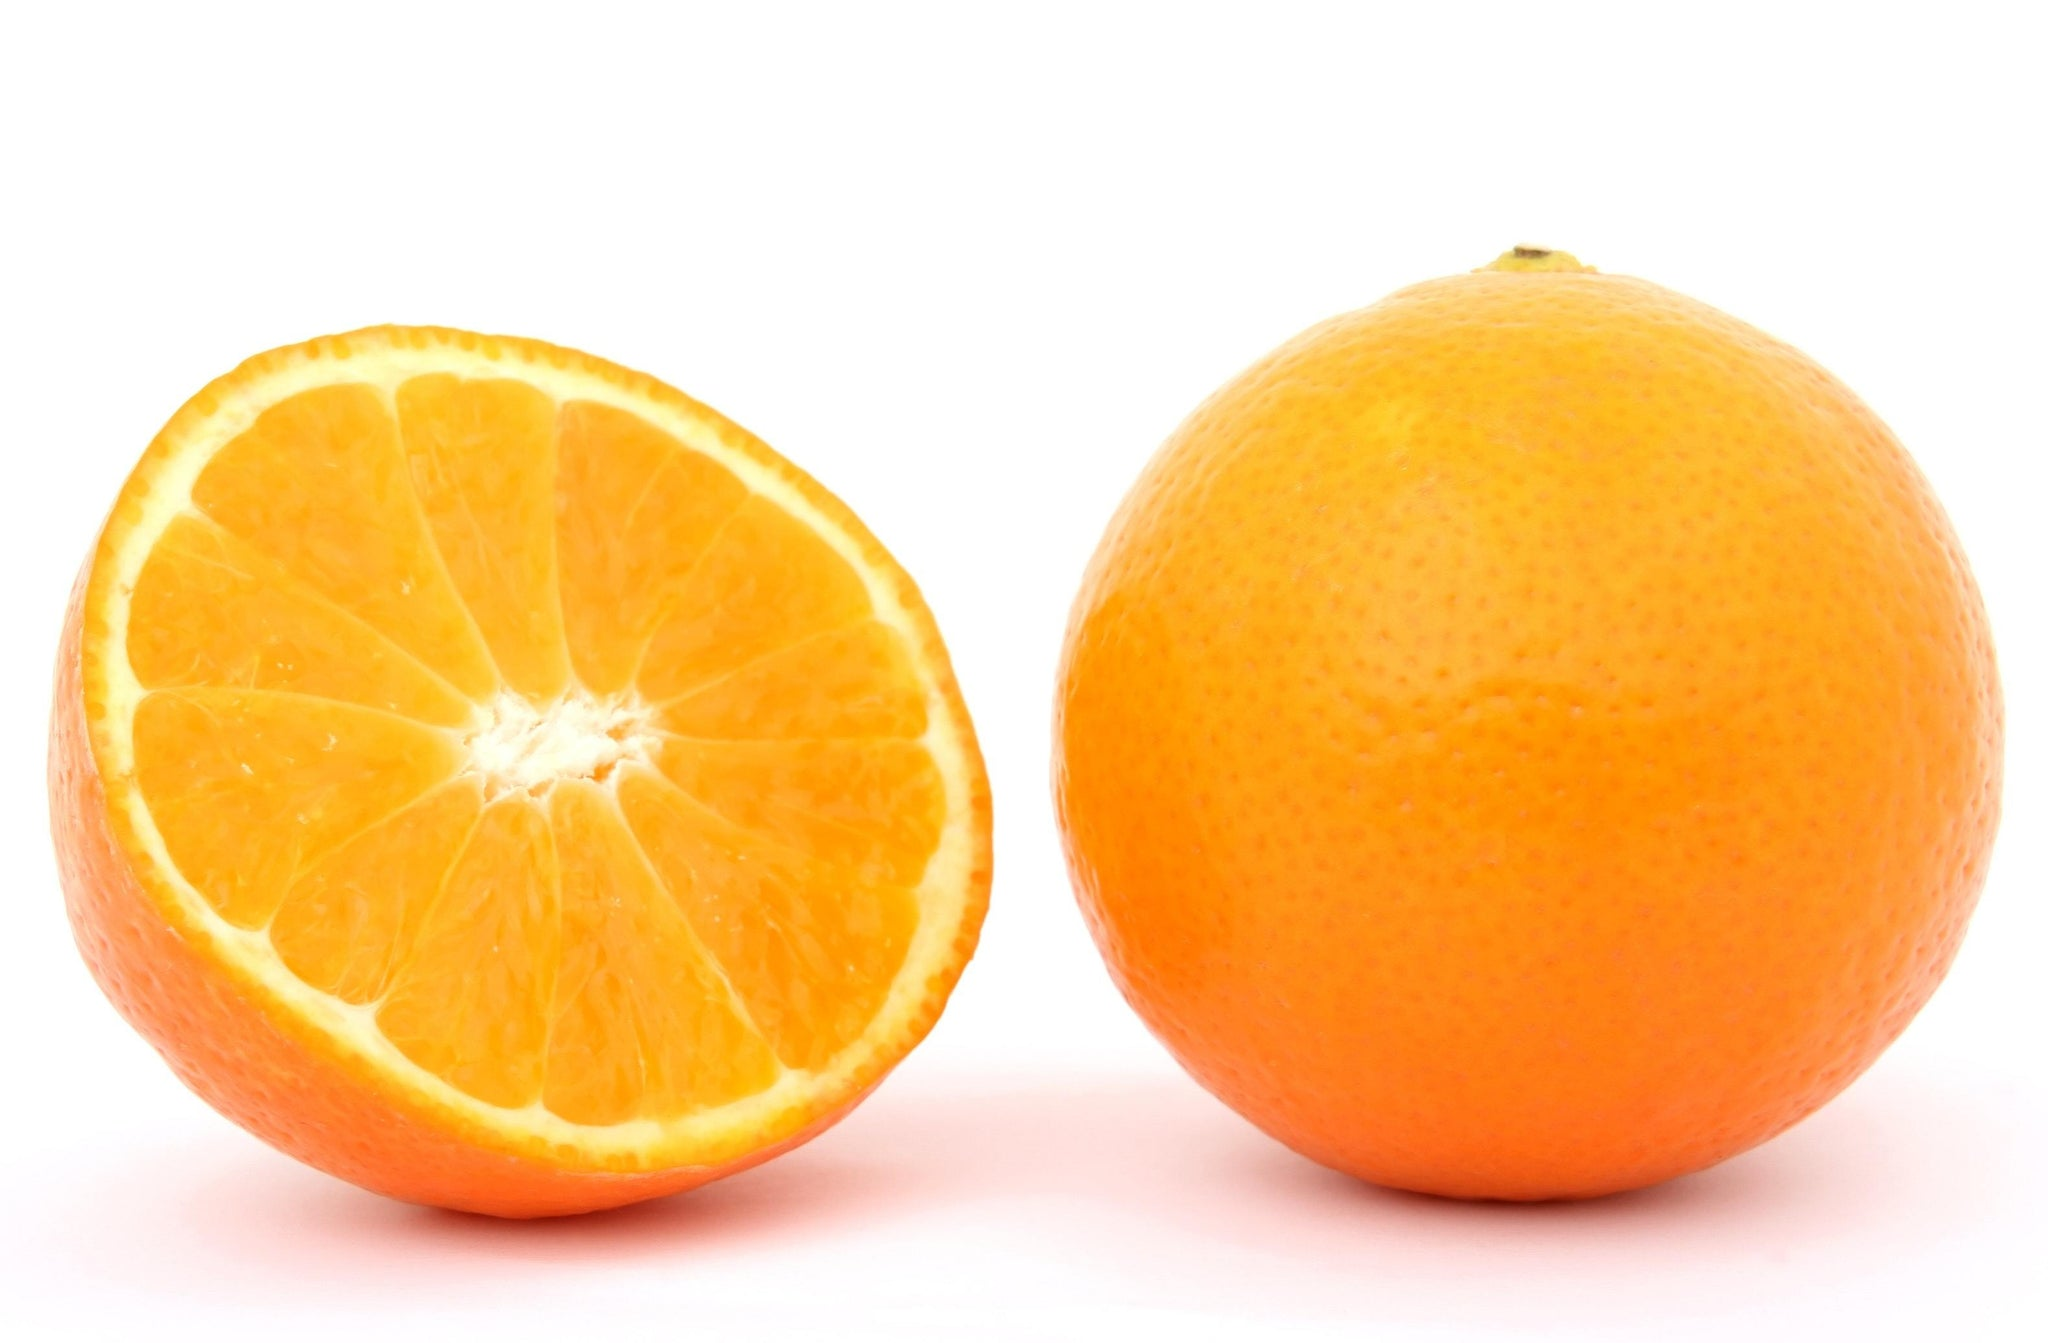 bel>Oranges, each